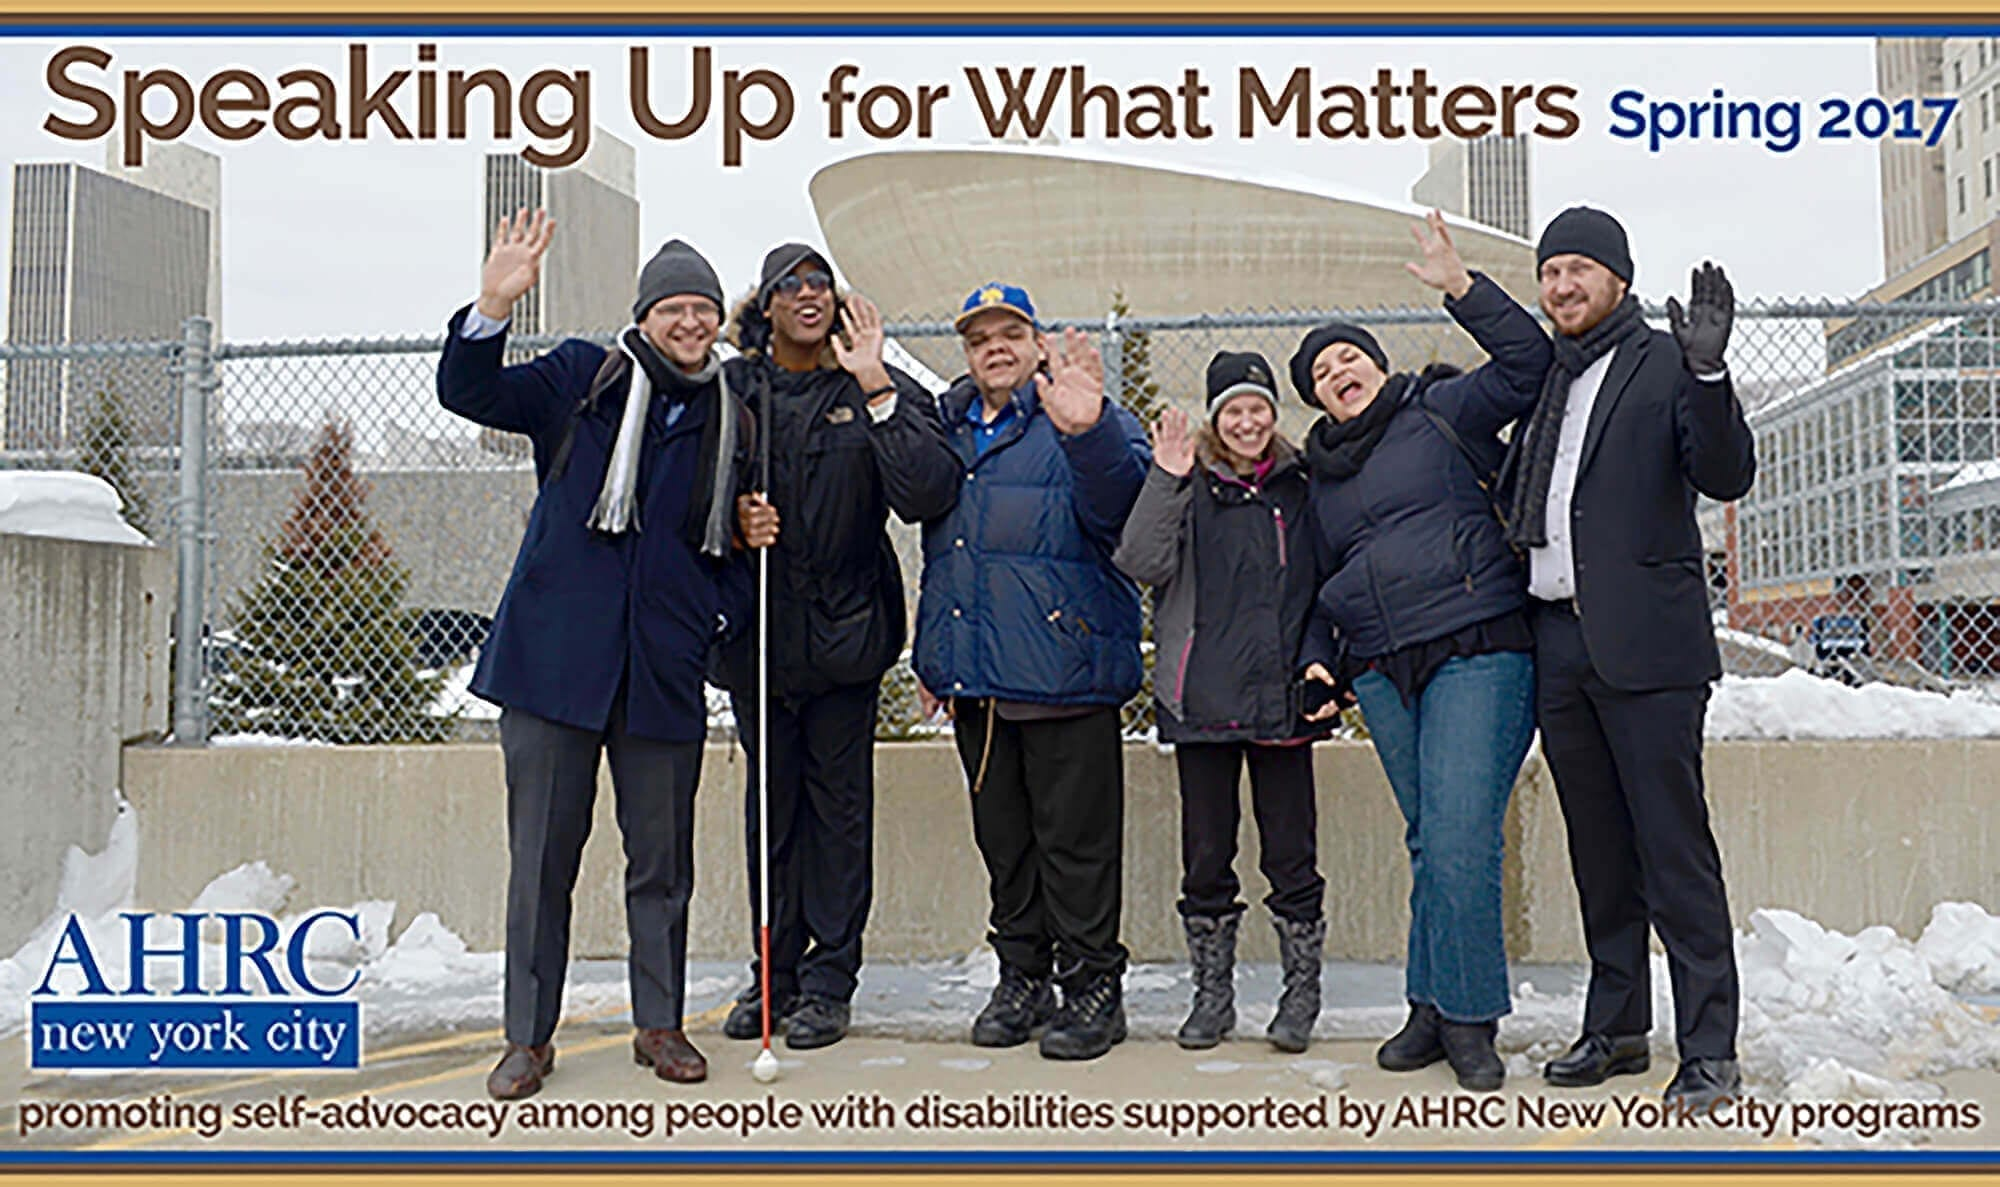 Speaking Up for What Matters Spring 2017